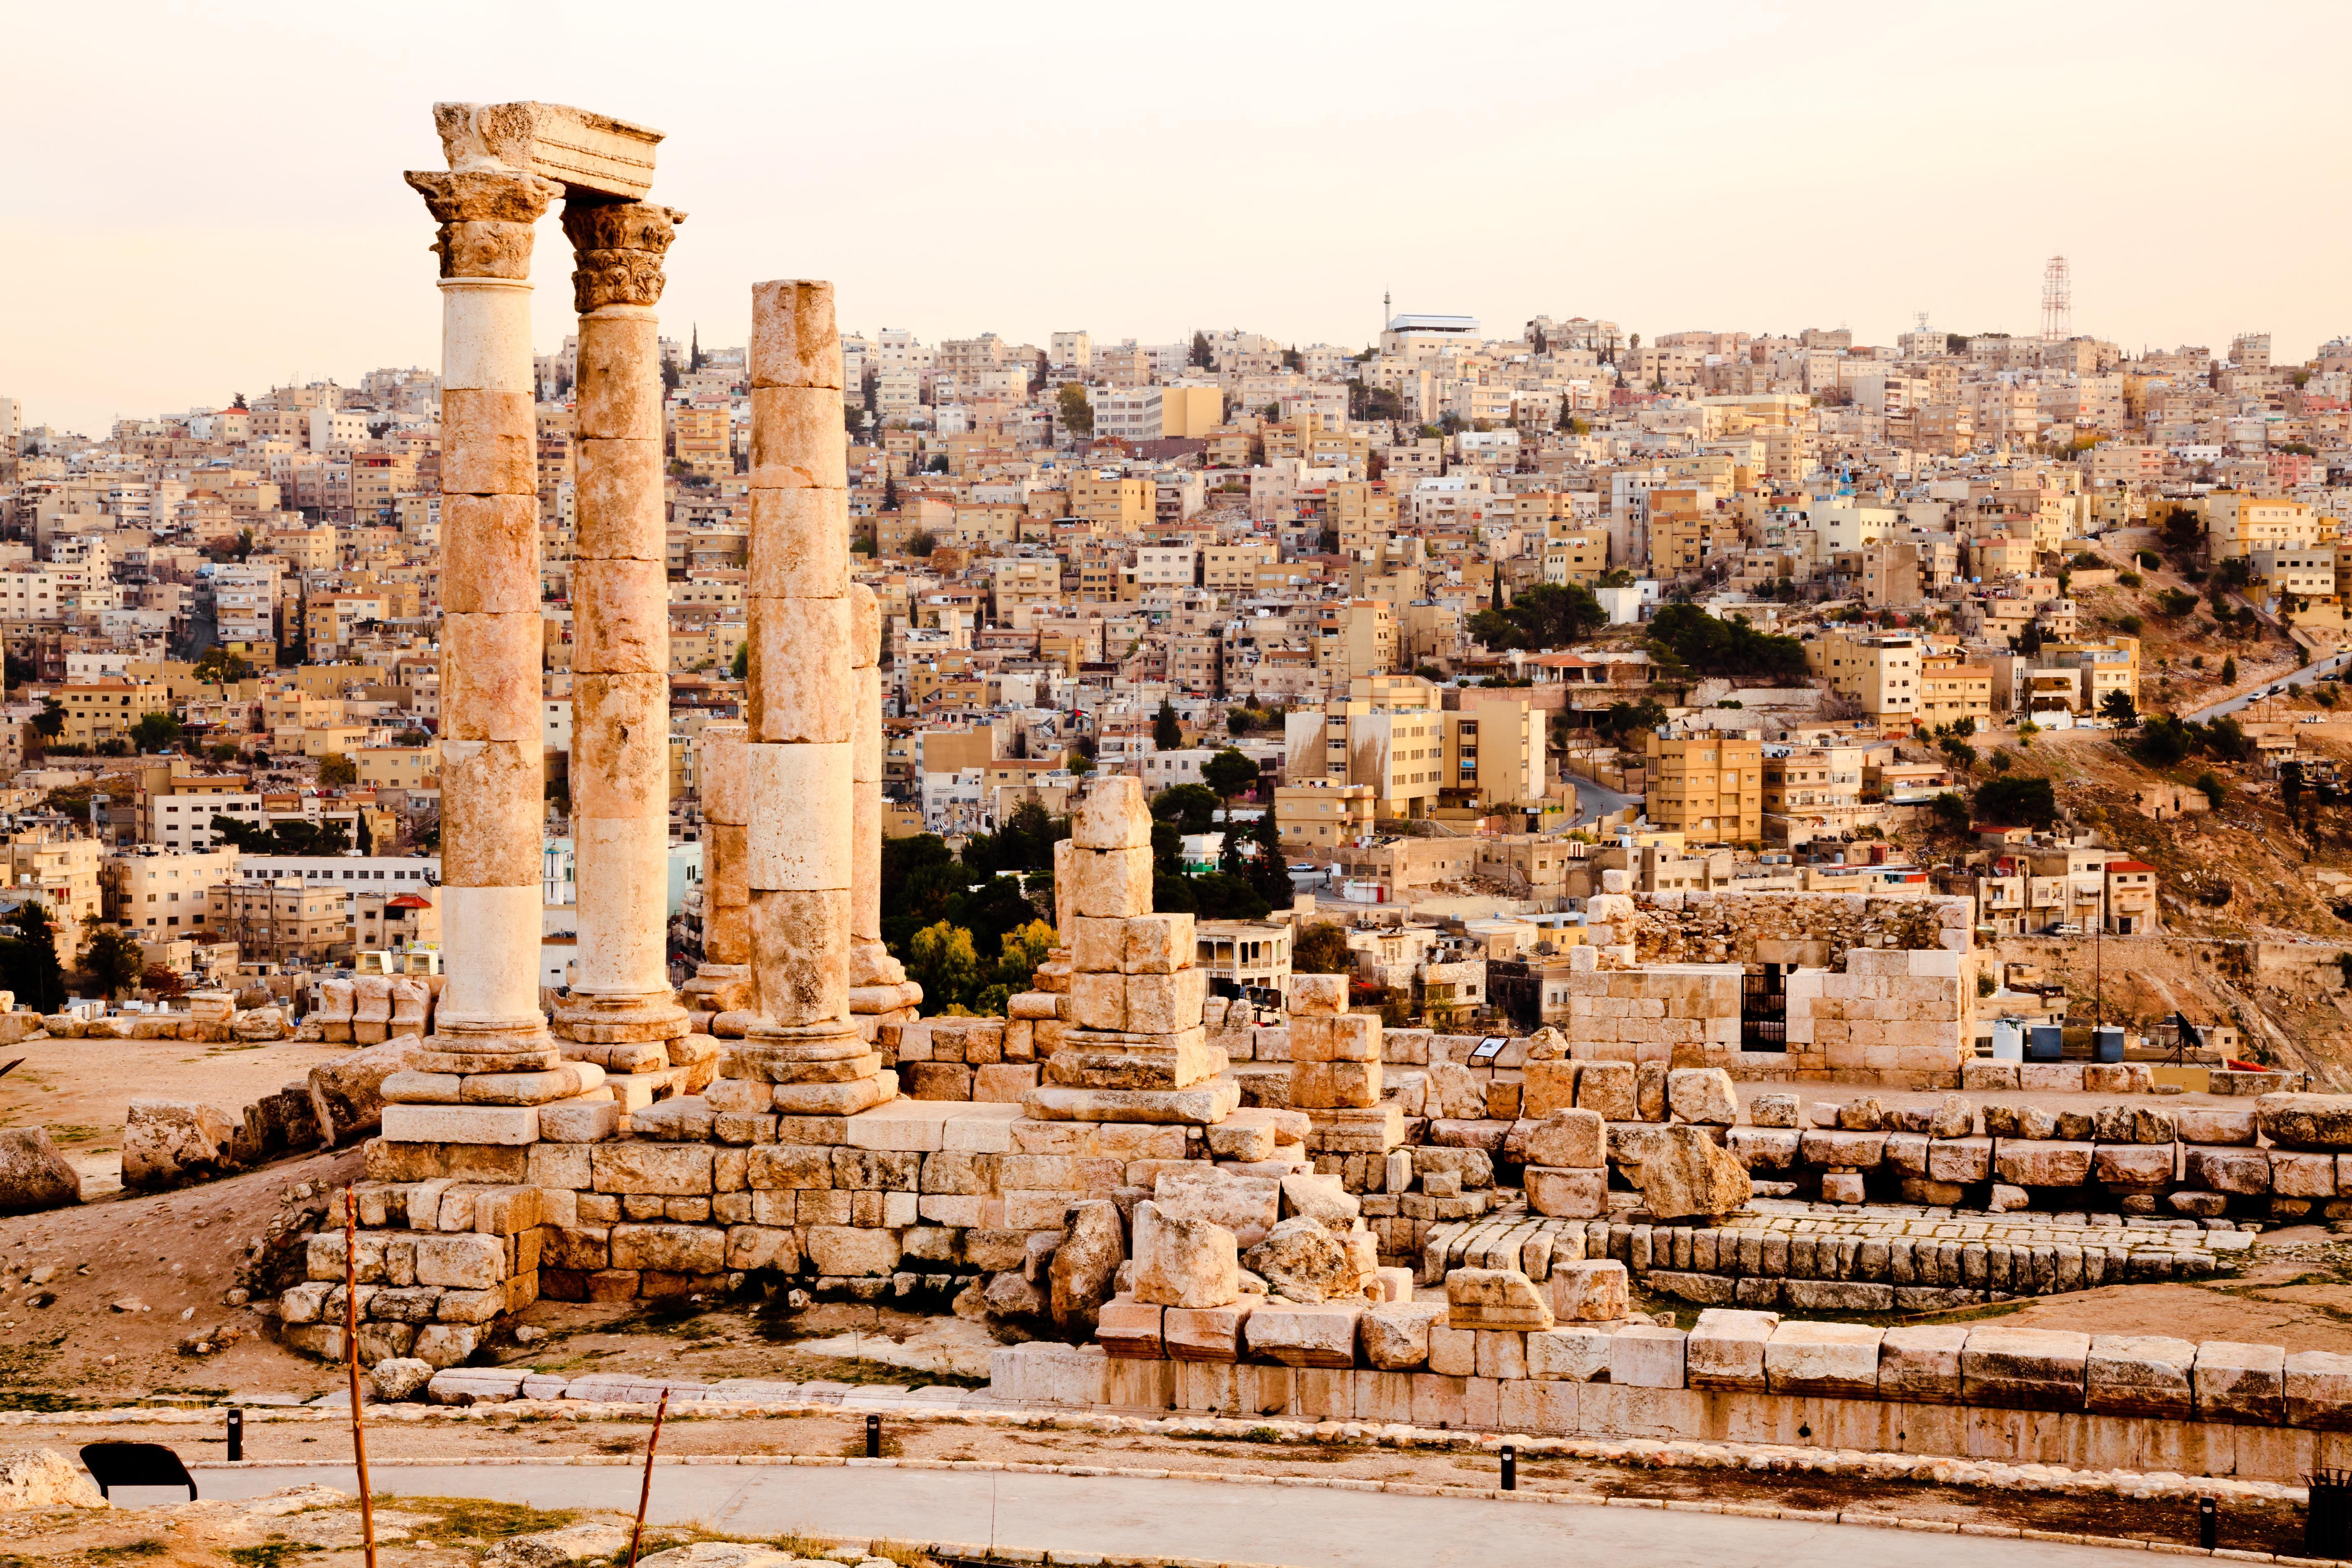 How to Spend 2 Days in Amman